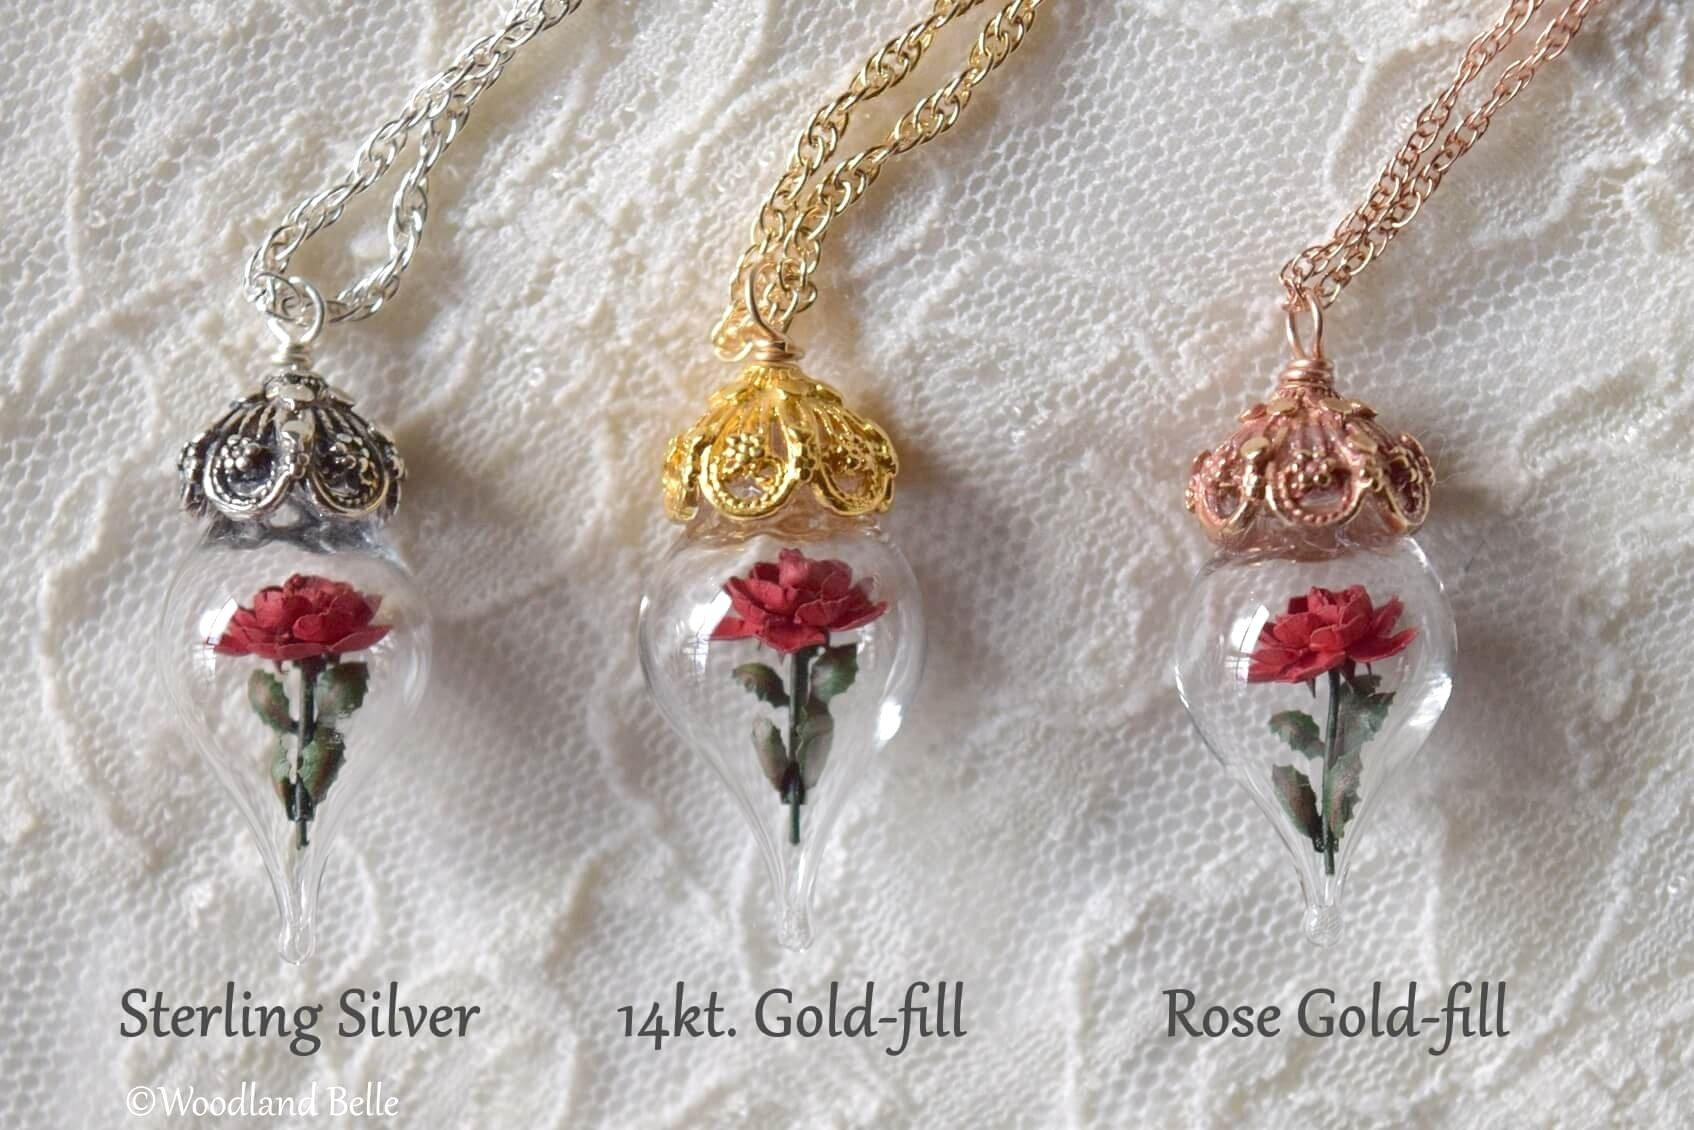 Pink Rose Necklace - Sterling Silver Glass Flower Pendant - Personalized Gift - Mother, Grandmother Gift - by Woodland Belle